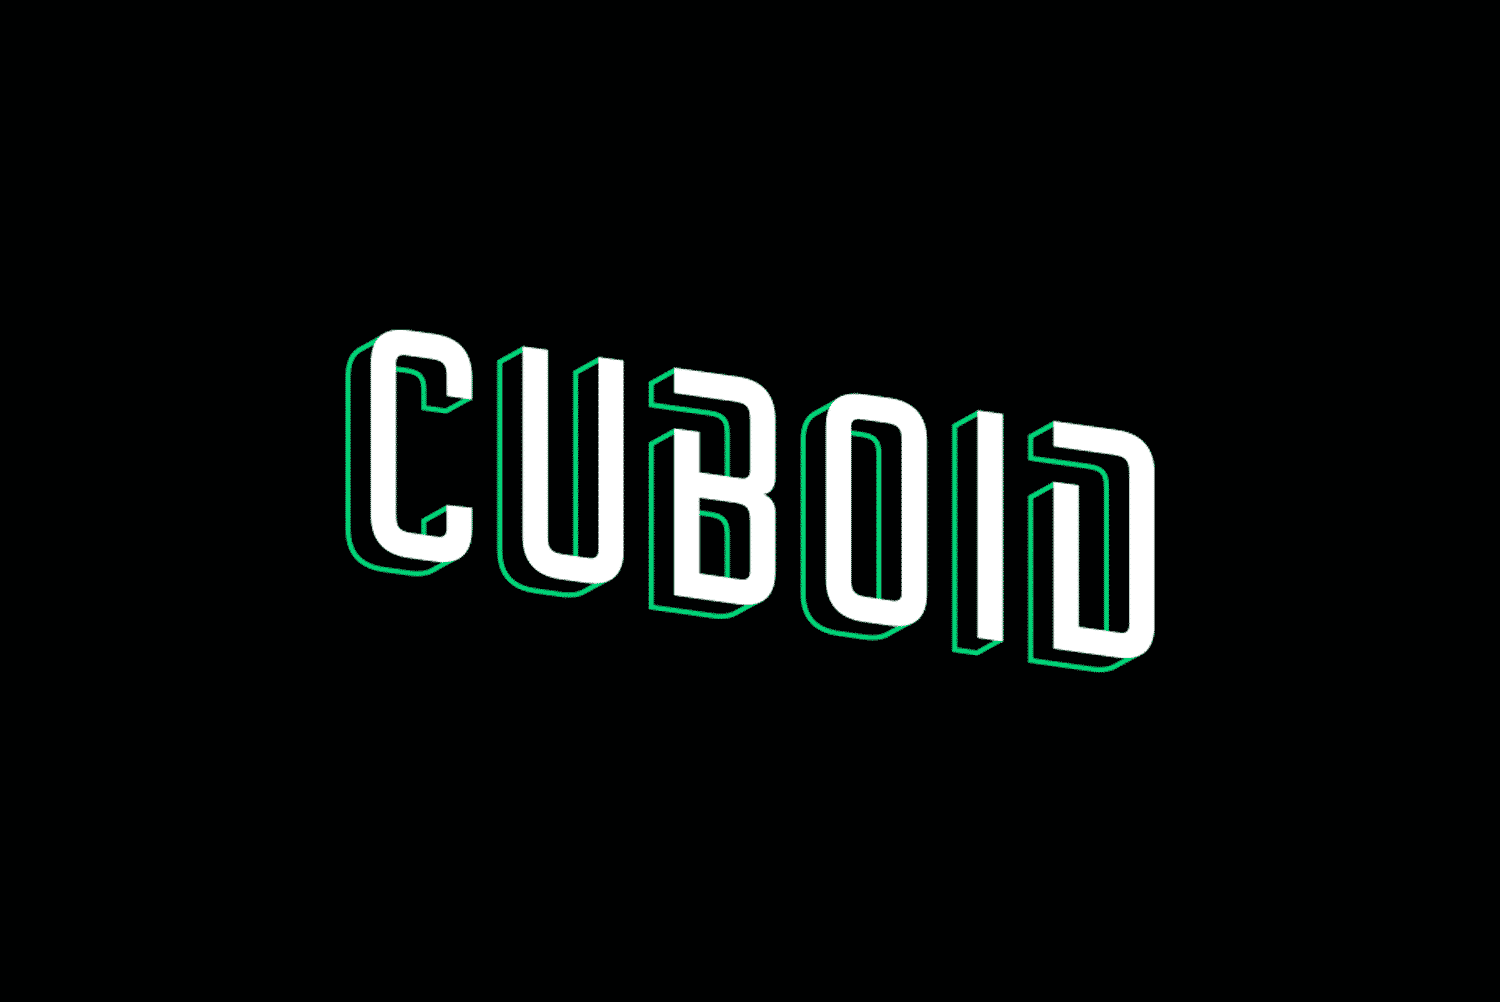 Cuboid home theatre logo design by Flux Visual Communication, Adelaide